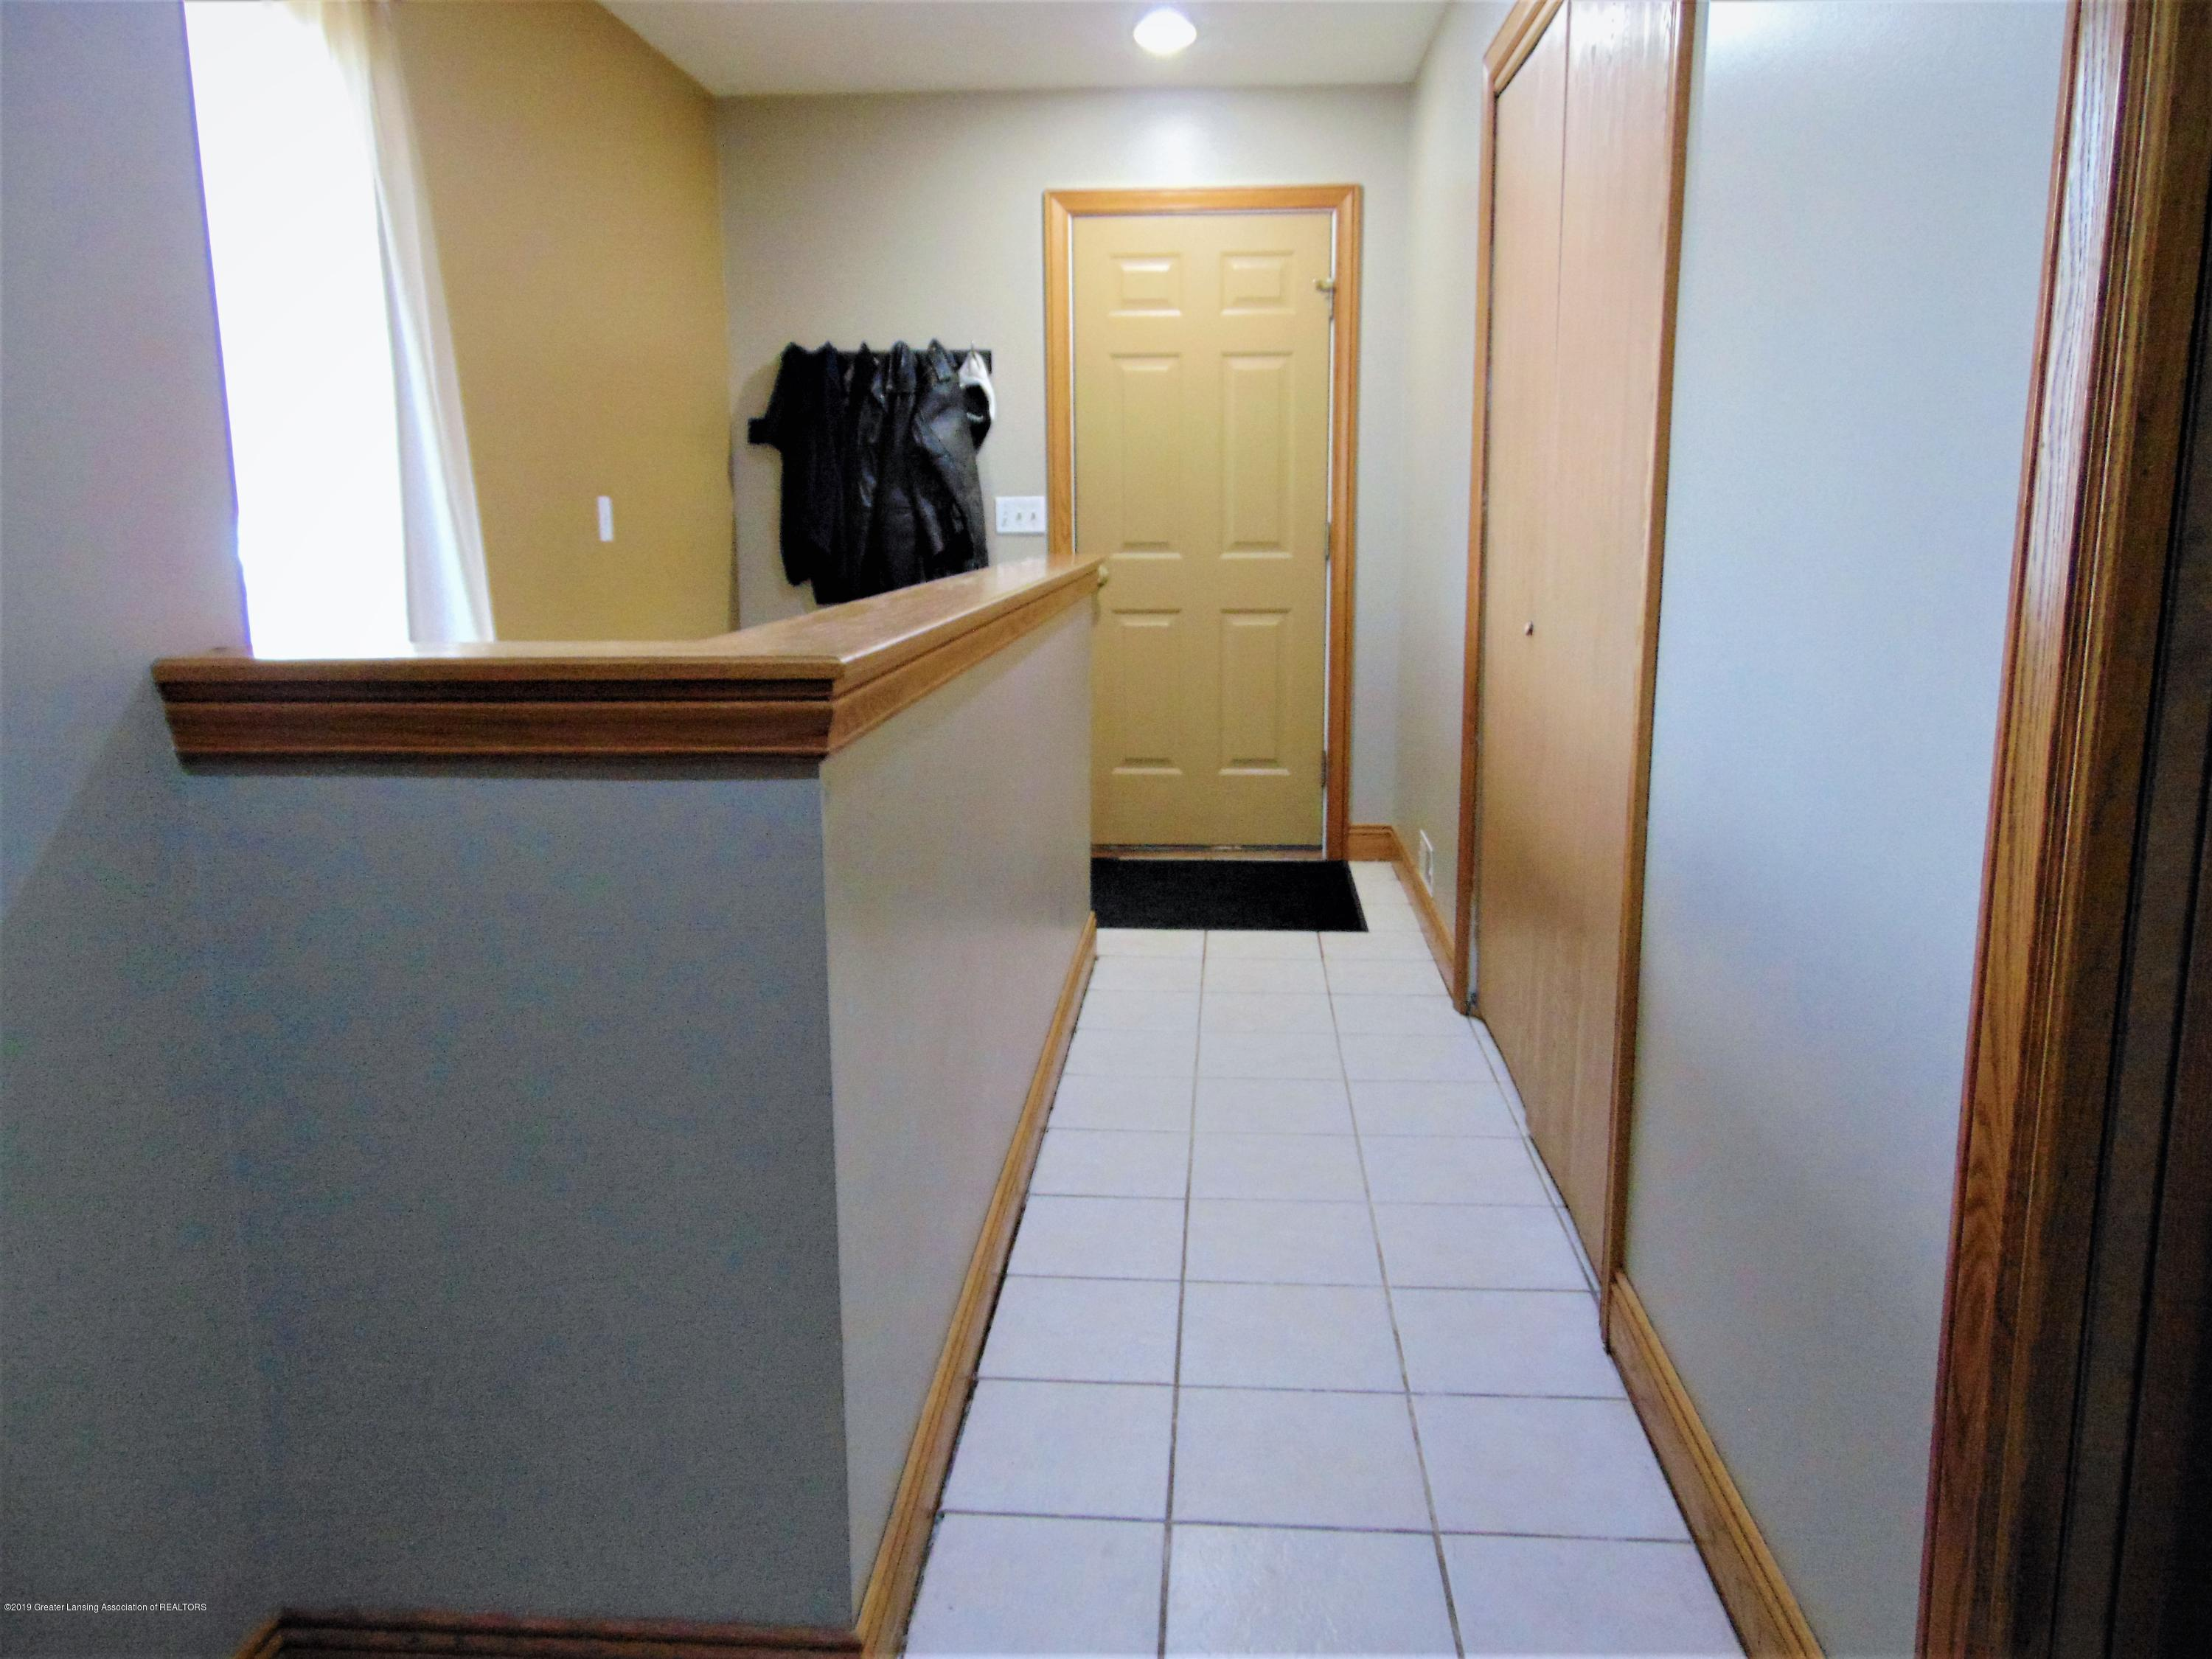 3104 Meadow Brook Rd - Hall to garage, laundry and basement - 17